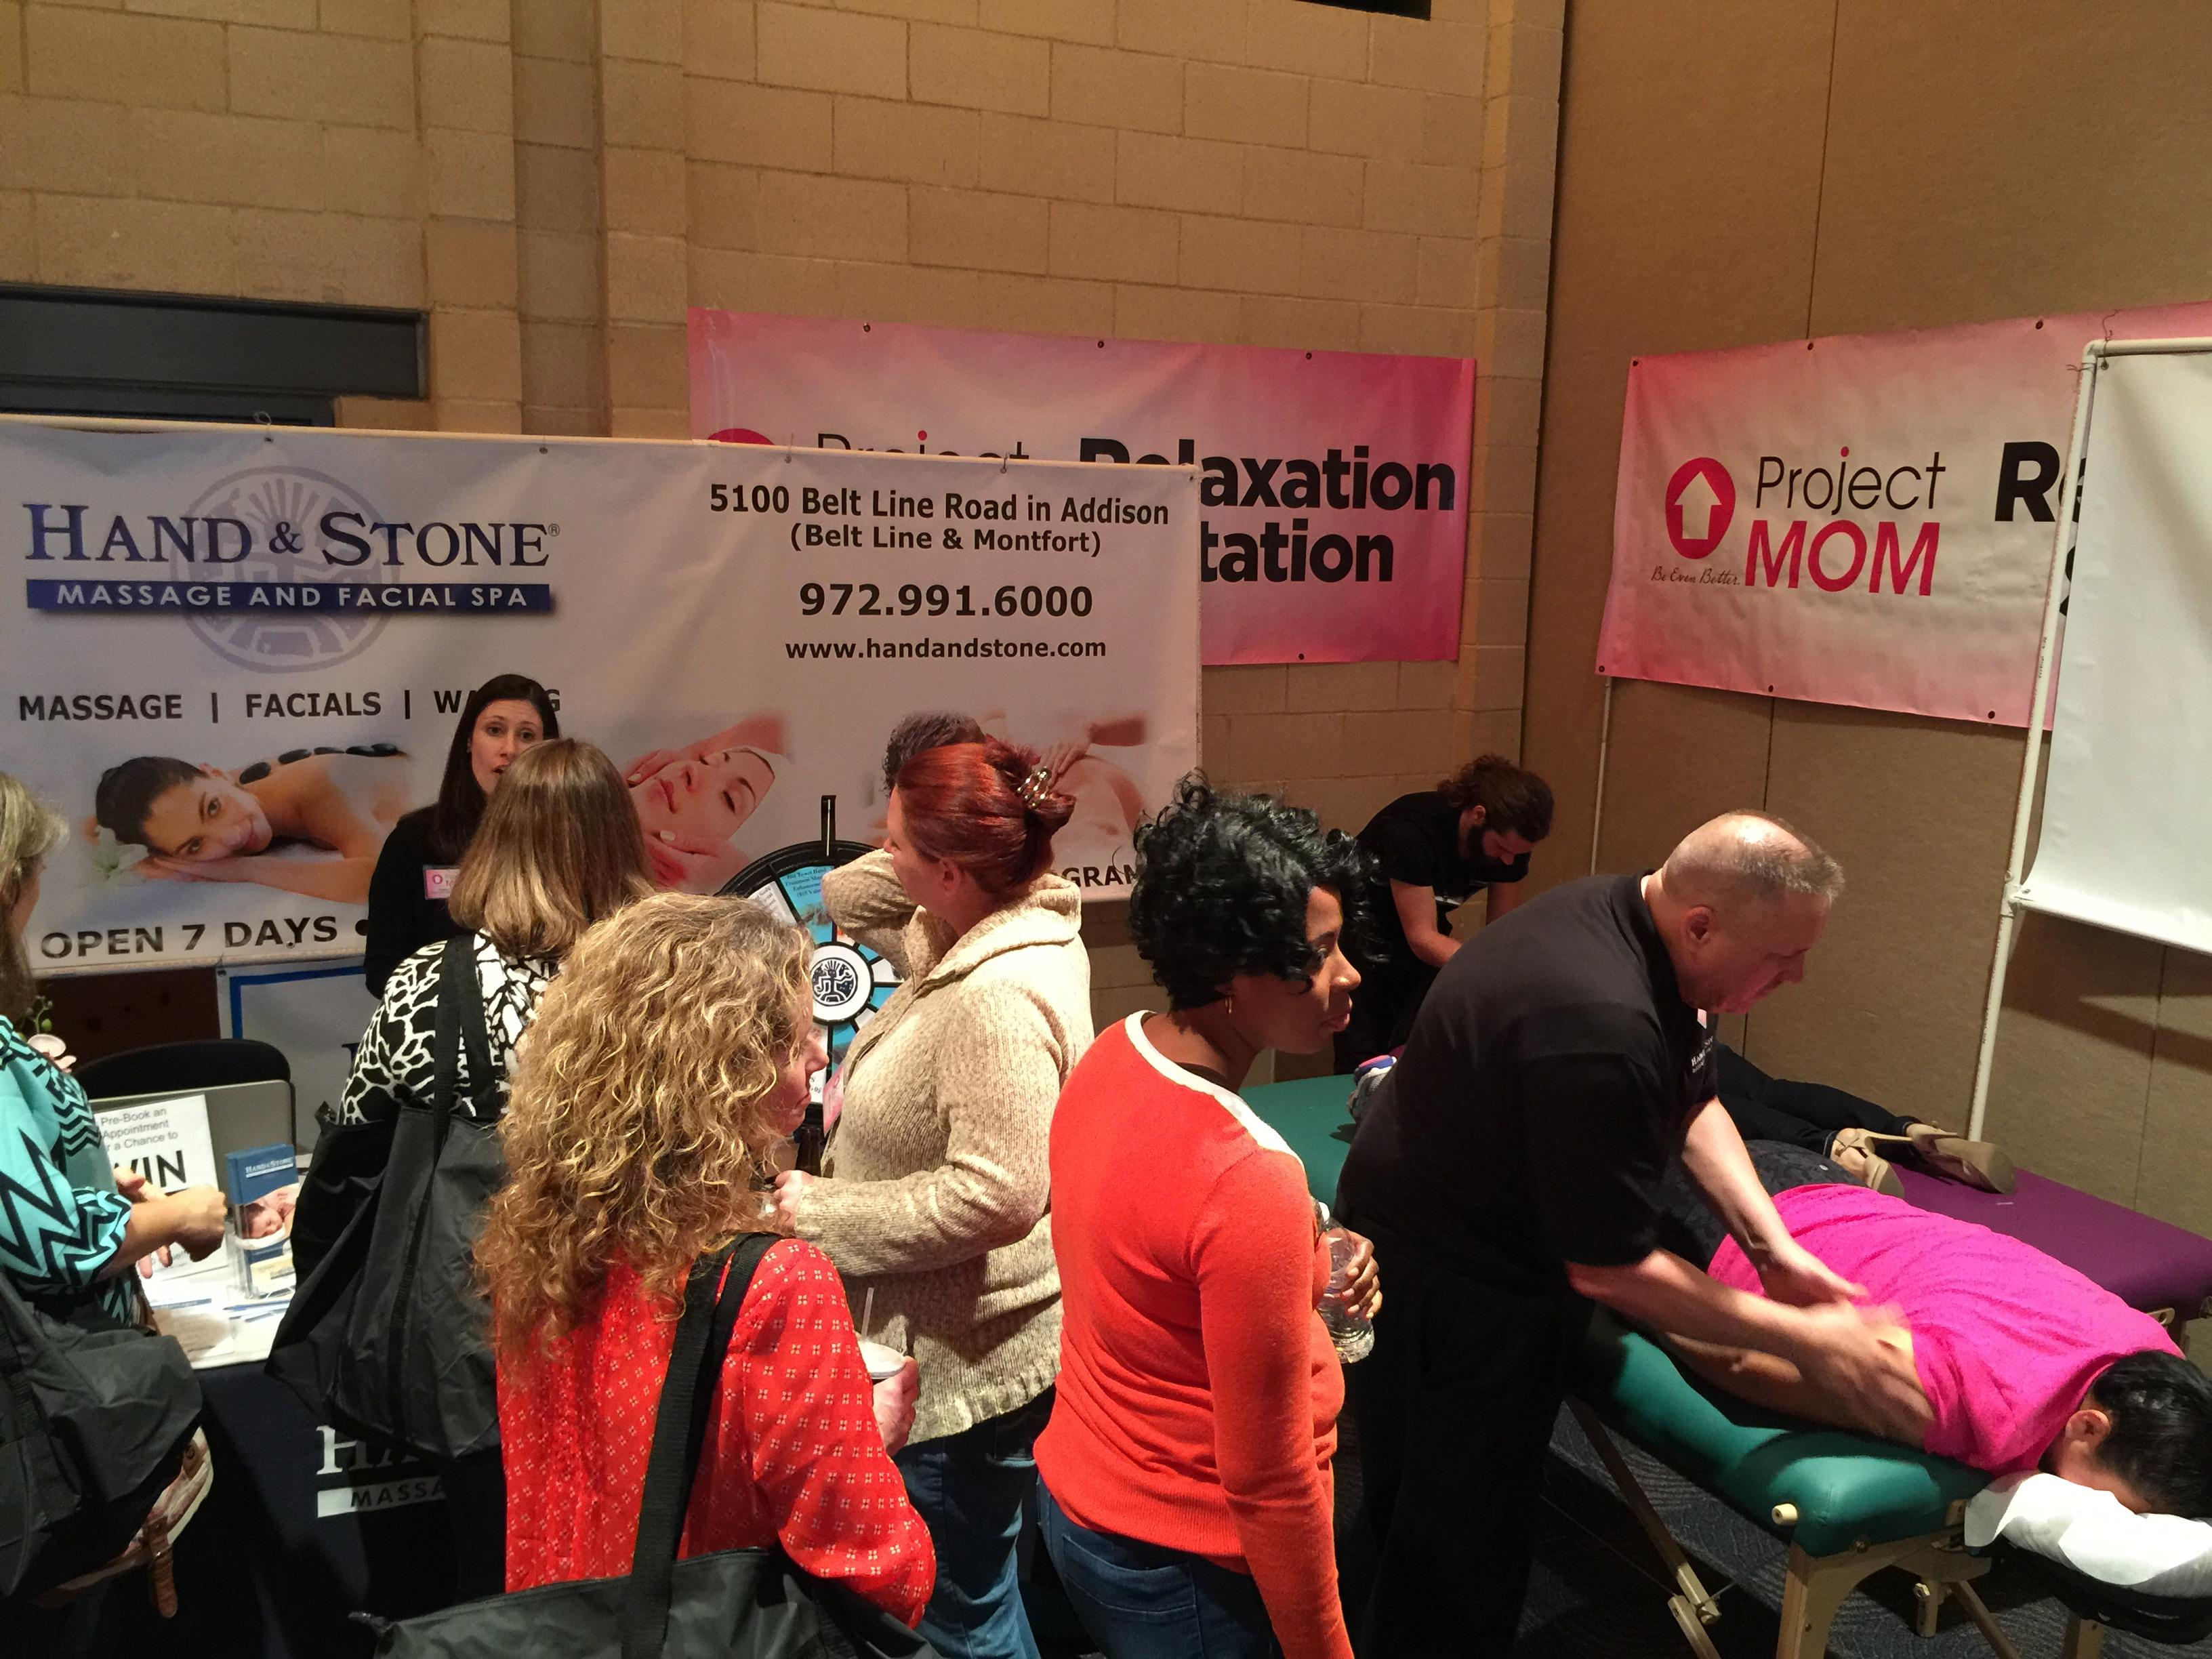 Sponsoring Project Mom at the Addison Conference Center